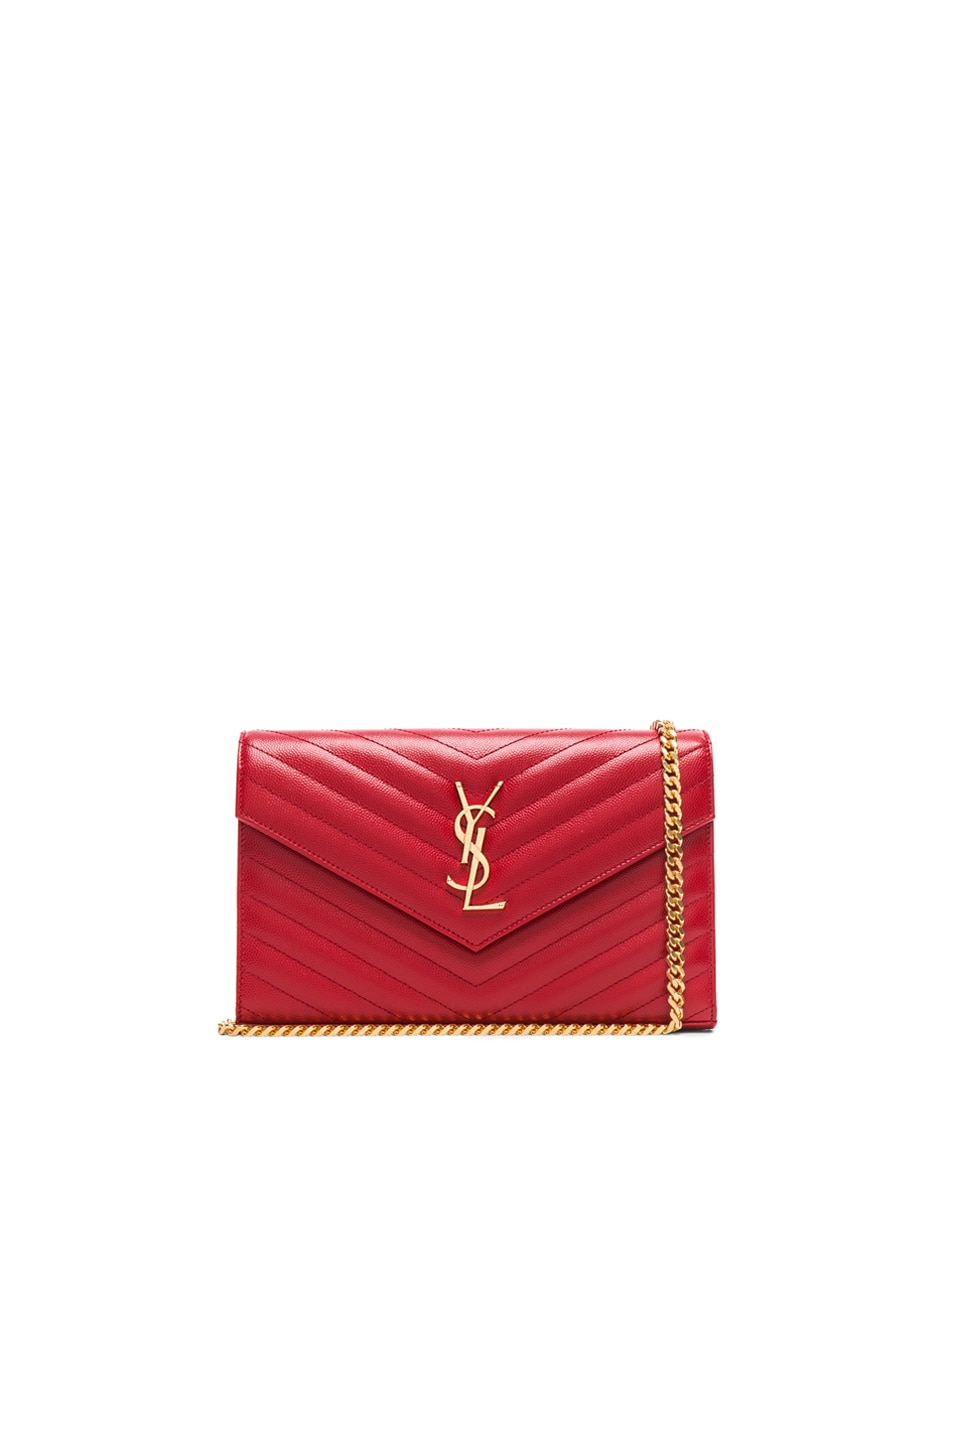 59cd261ecfca Used Ysl Wallet On Chain